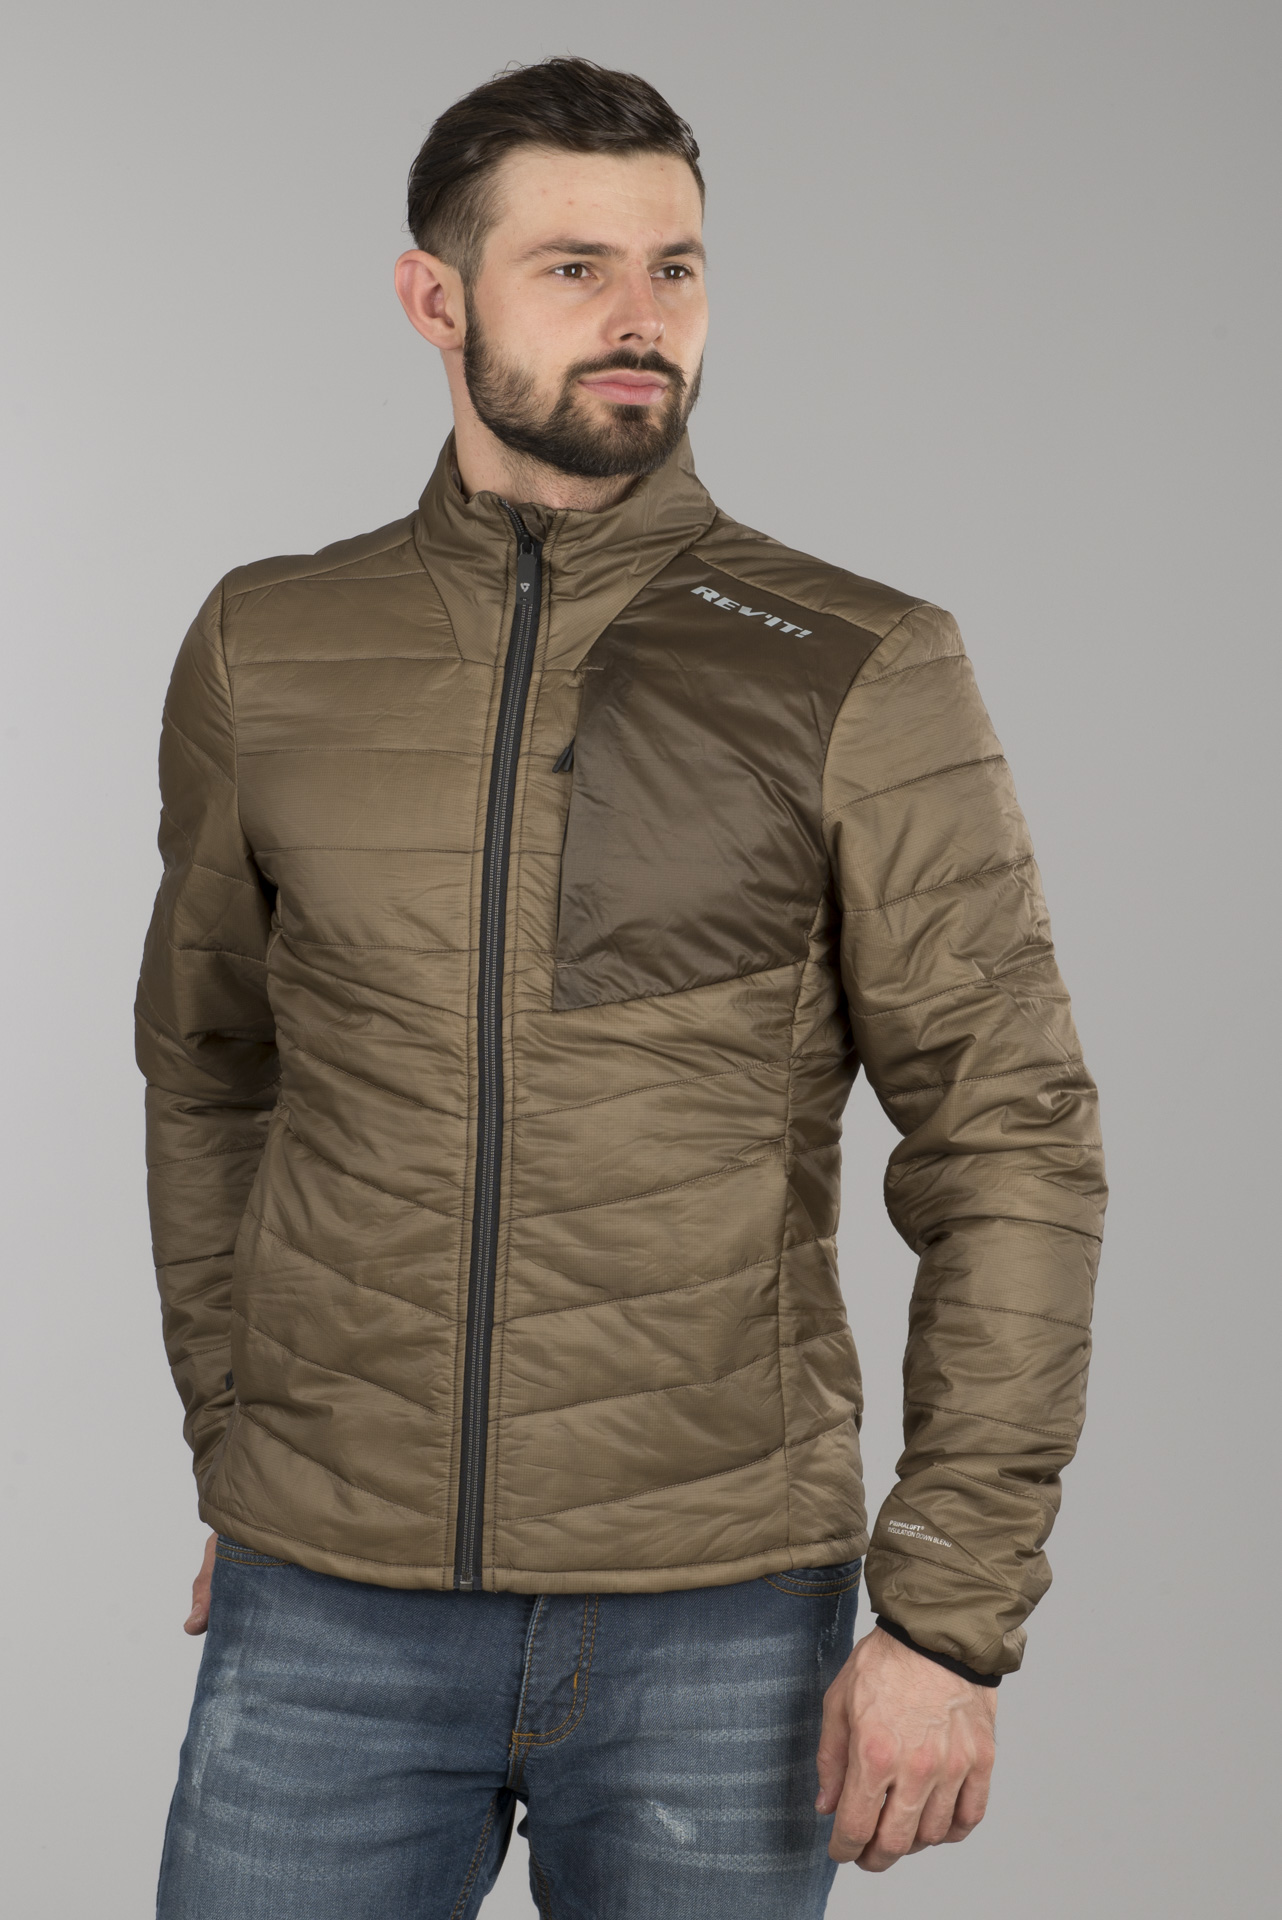 Rev It Solar 2 Jacket